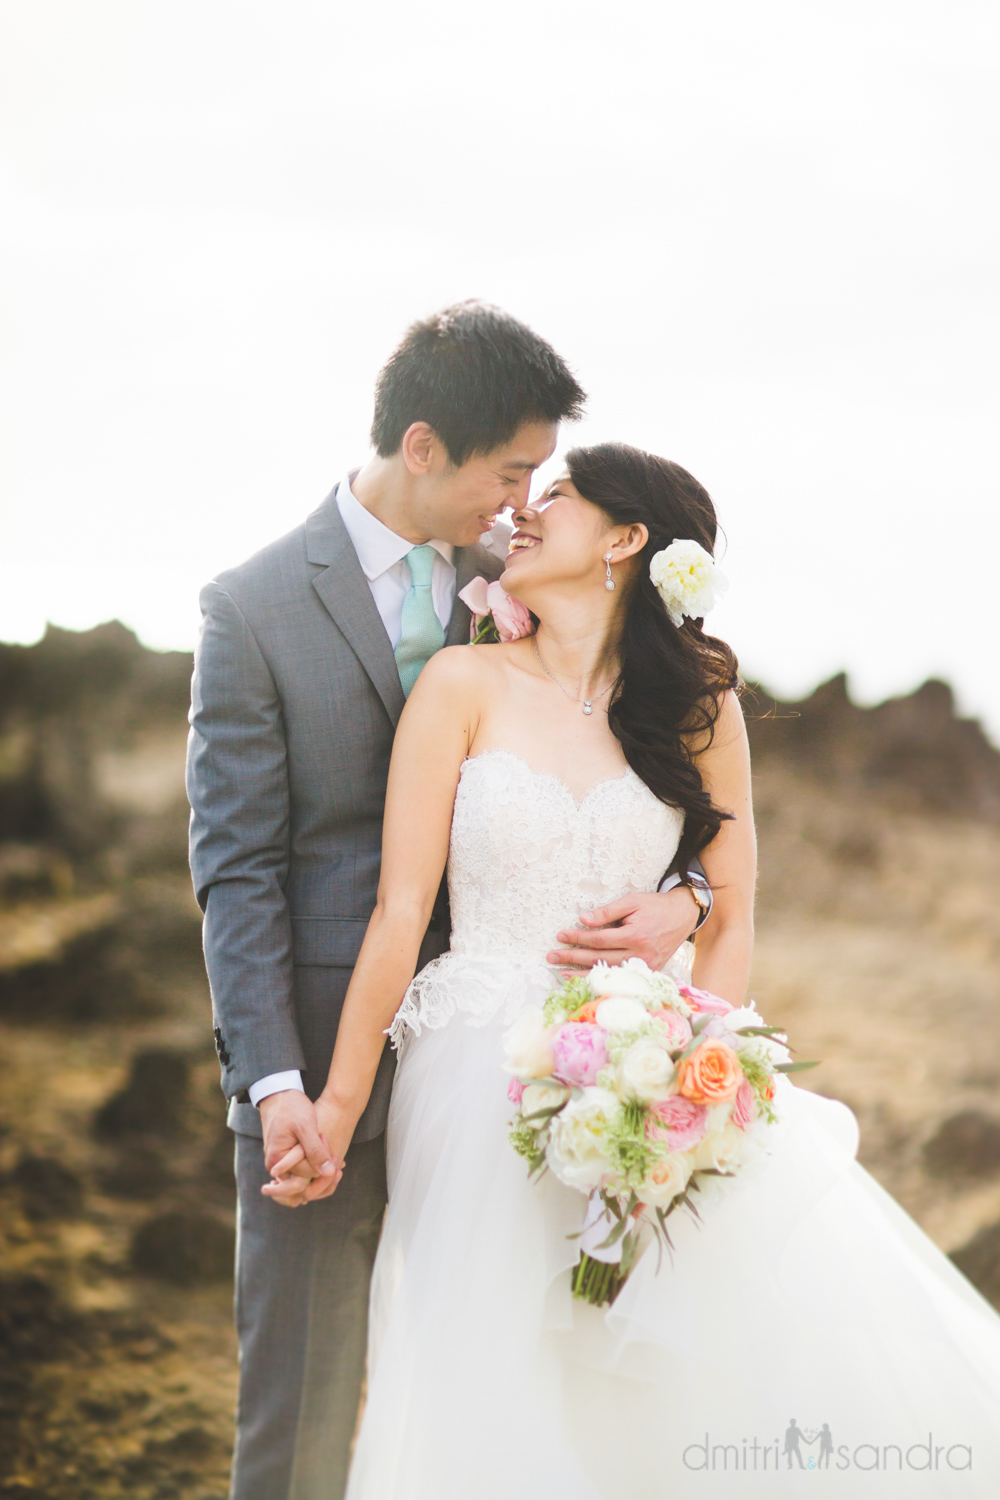 bliss-maui-wedding-kukahiko-estate-dmitri-and-sandra-photography-phoebe-simon-1.jpg